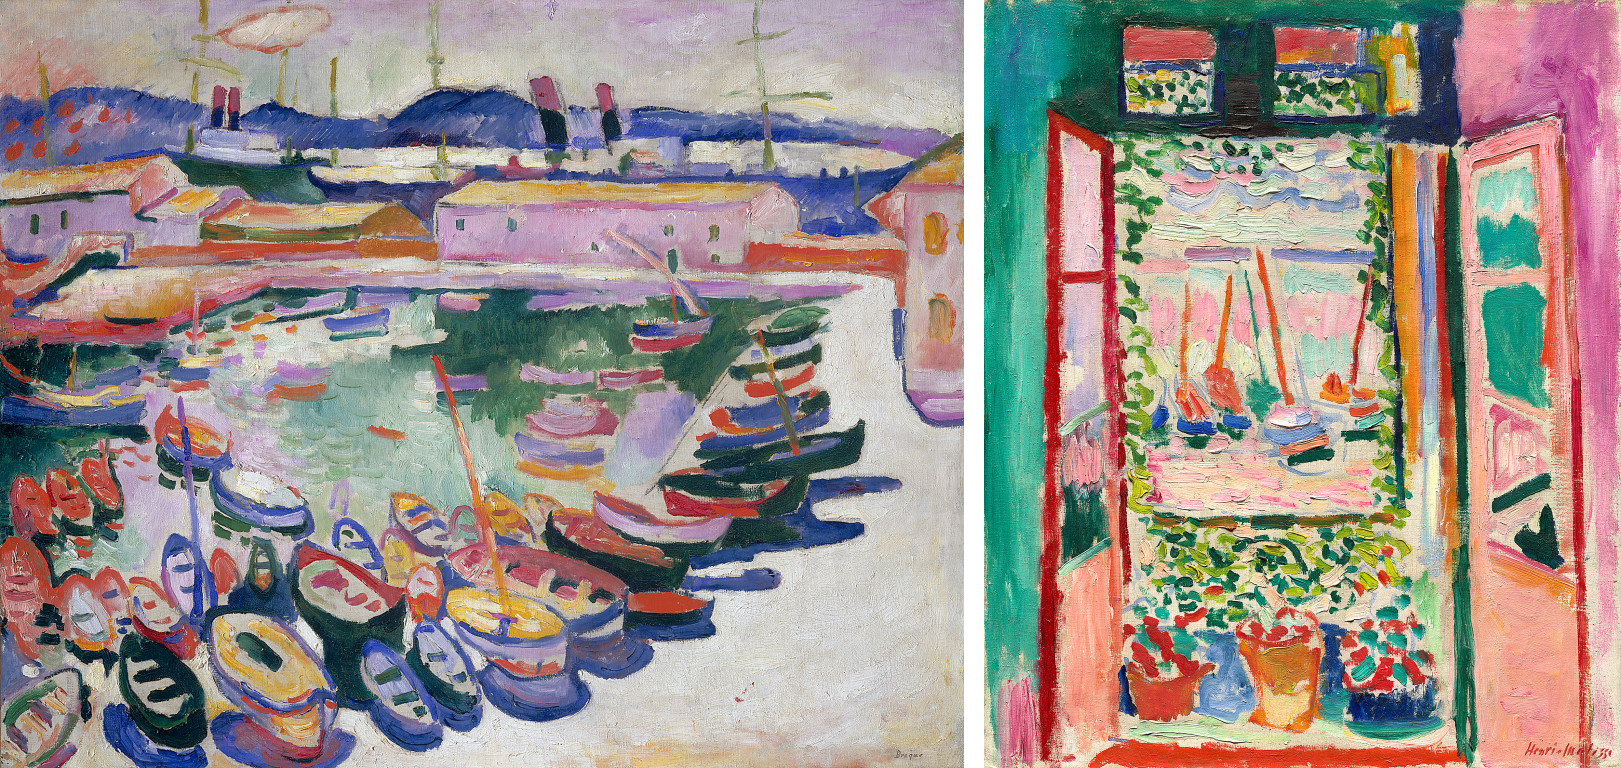 henri matisse and fauvism Fauvism is the name given to the work produced by a group of artists including henri matisse and andré derain from around 1905 to 1910, which is typified by strong colors and fierce brushwork.